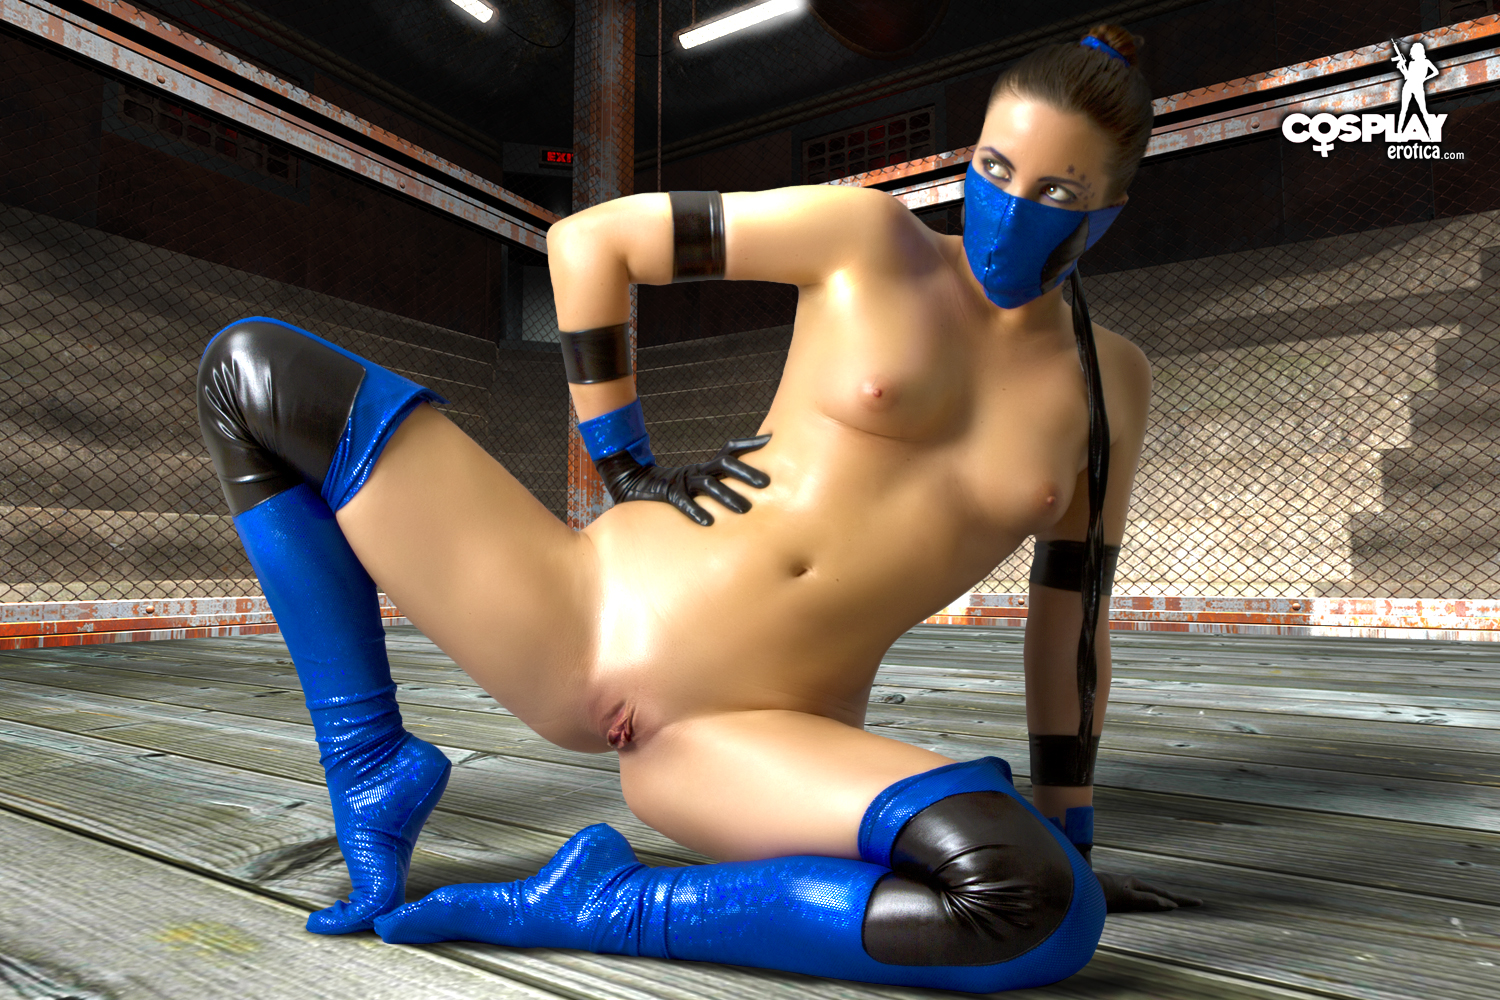 Nude patch boobs mortal kombat erotica comics